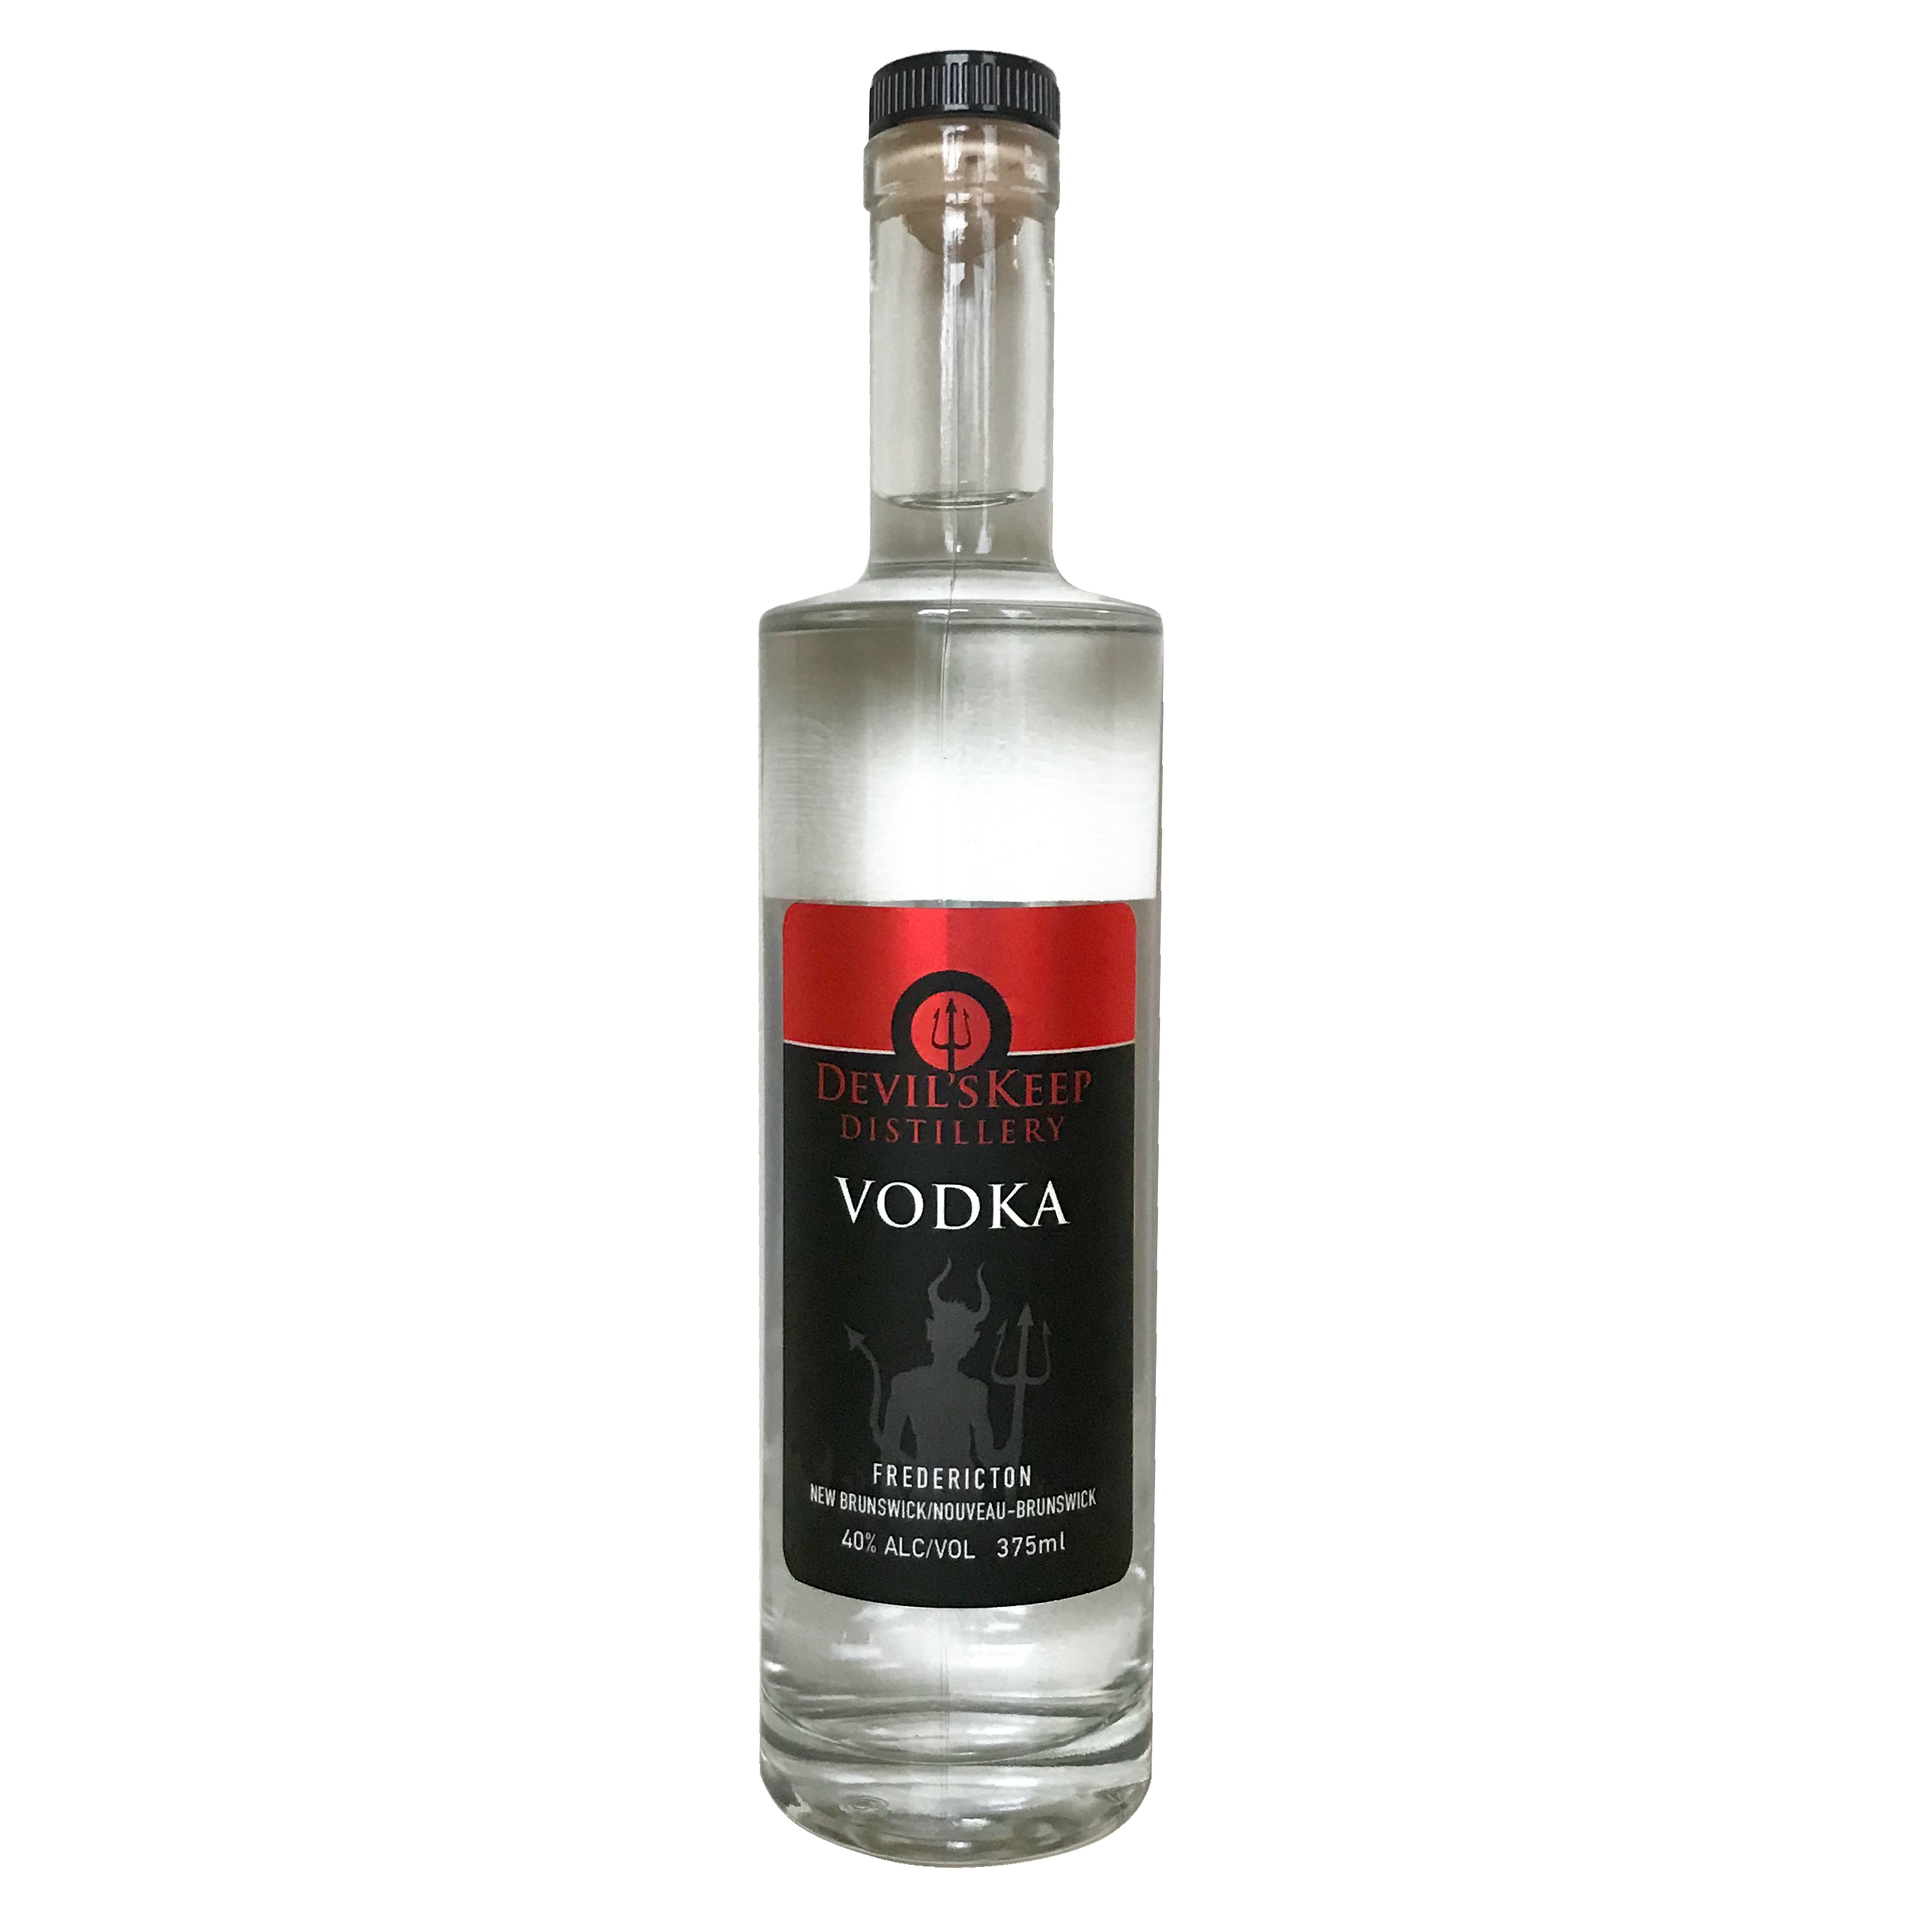 Devils Keep Handcrafted Vodka 375ml